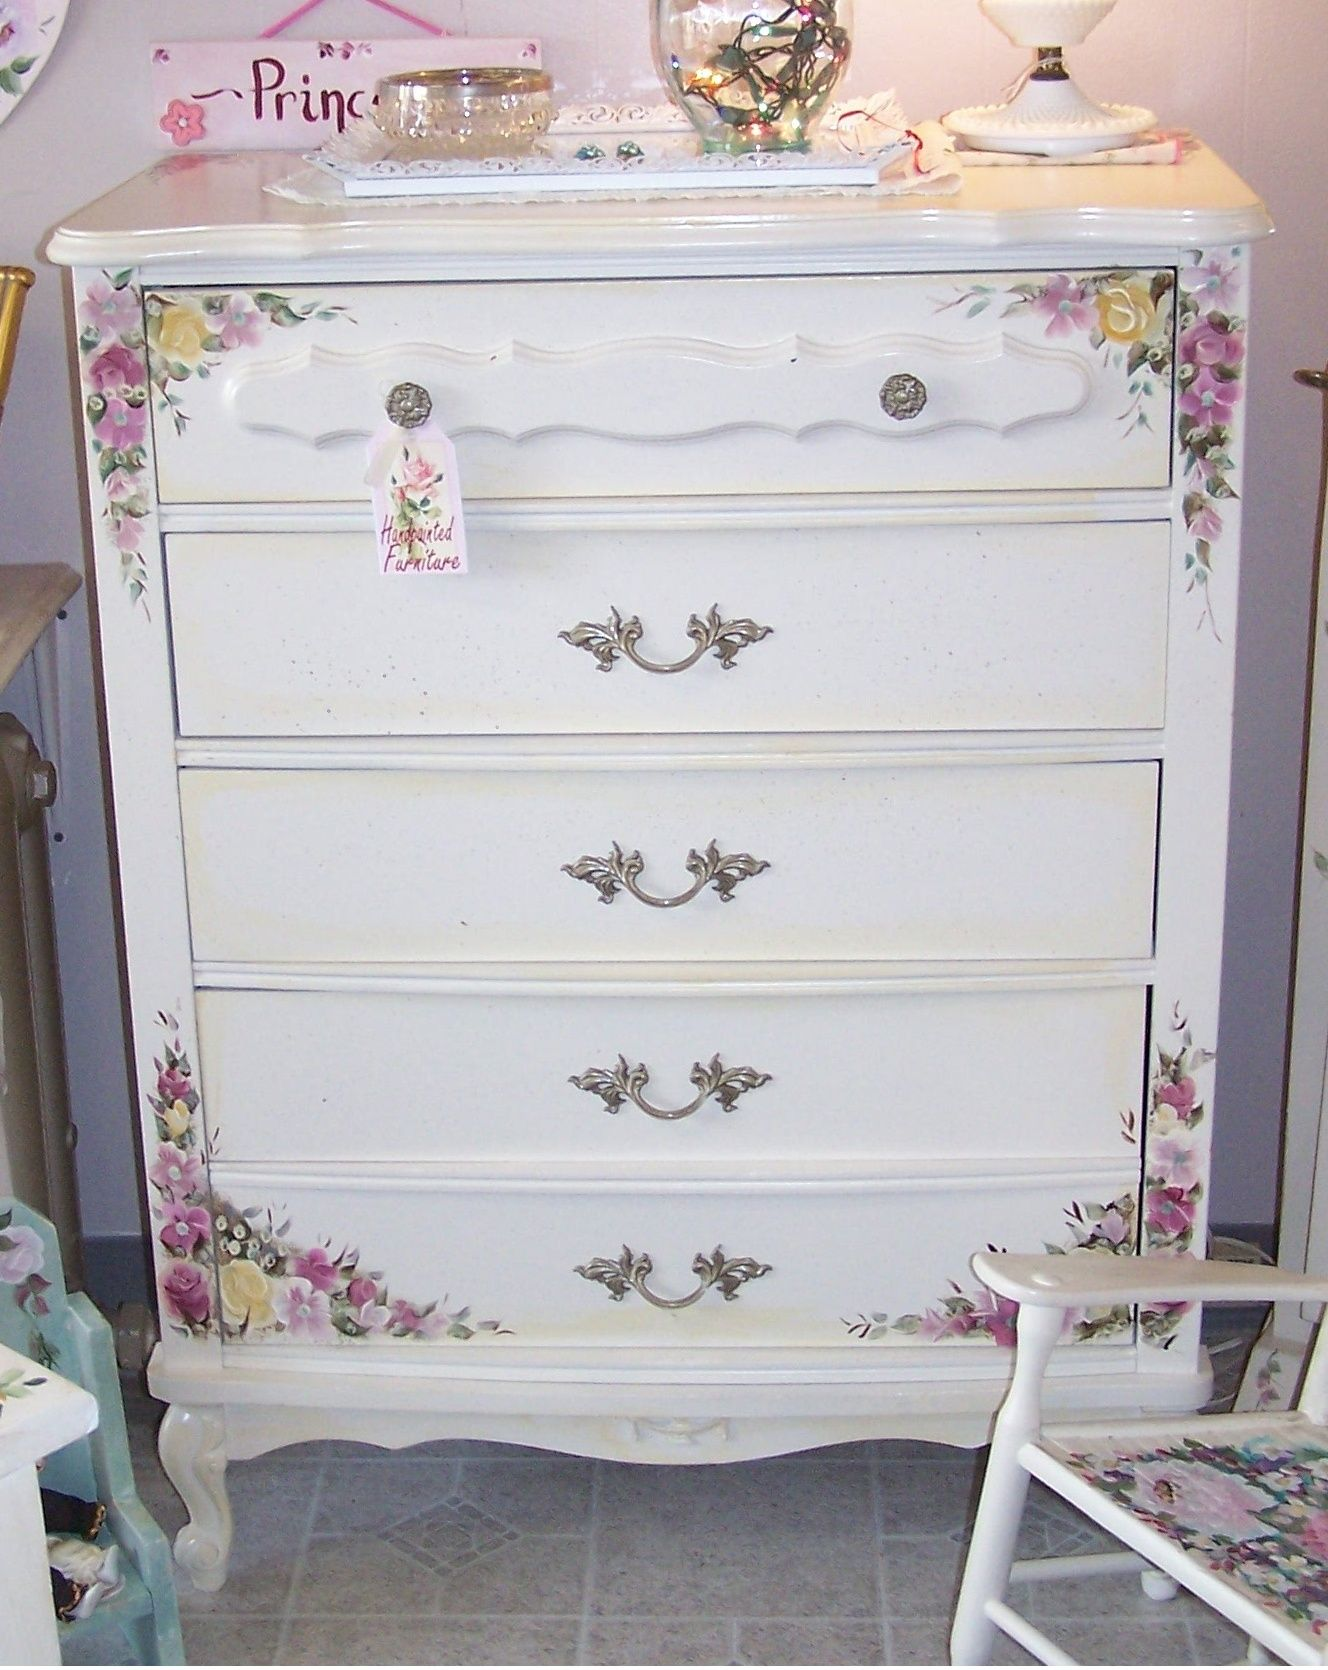 pink shabby chic furniture. Vintage Custom Painted Shabby Chic Dresser Chest Of Drawers Bedroom Furniture #shabbychic #paintedfurniture # Pink K